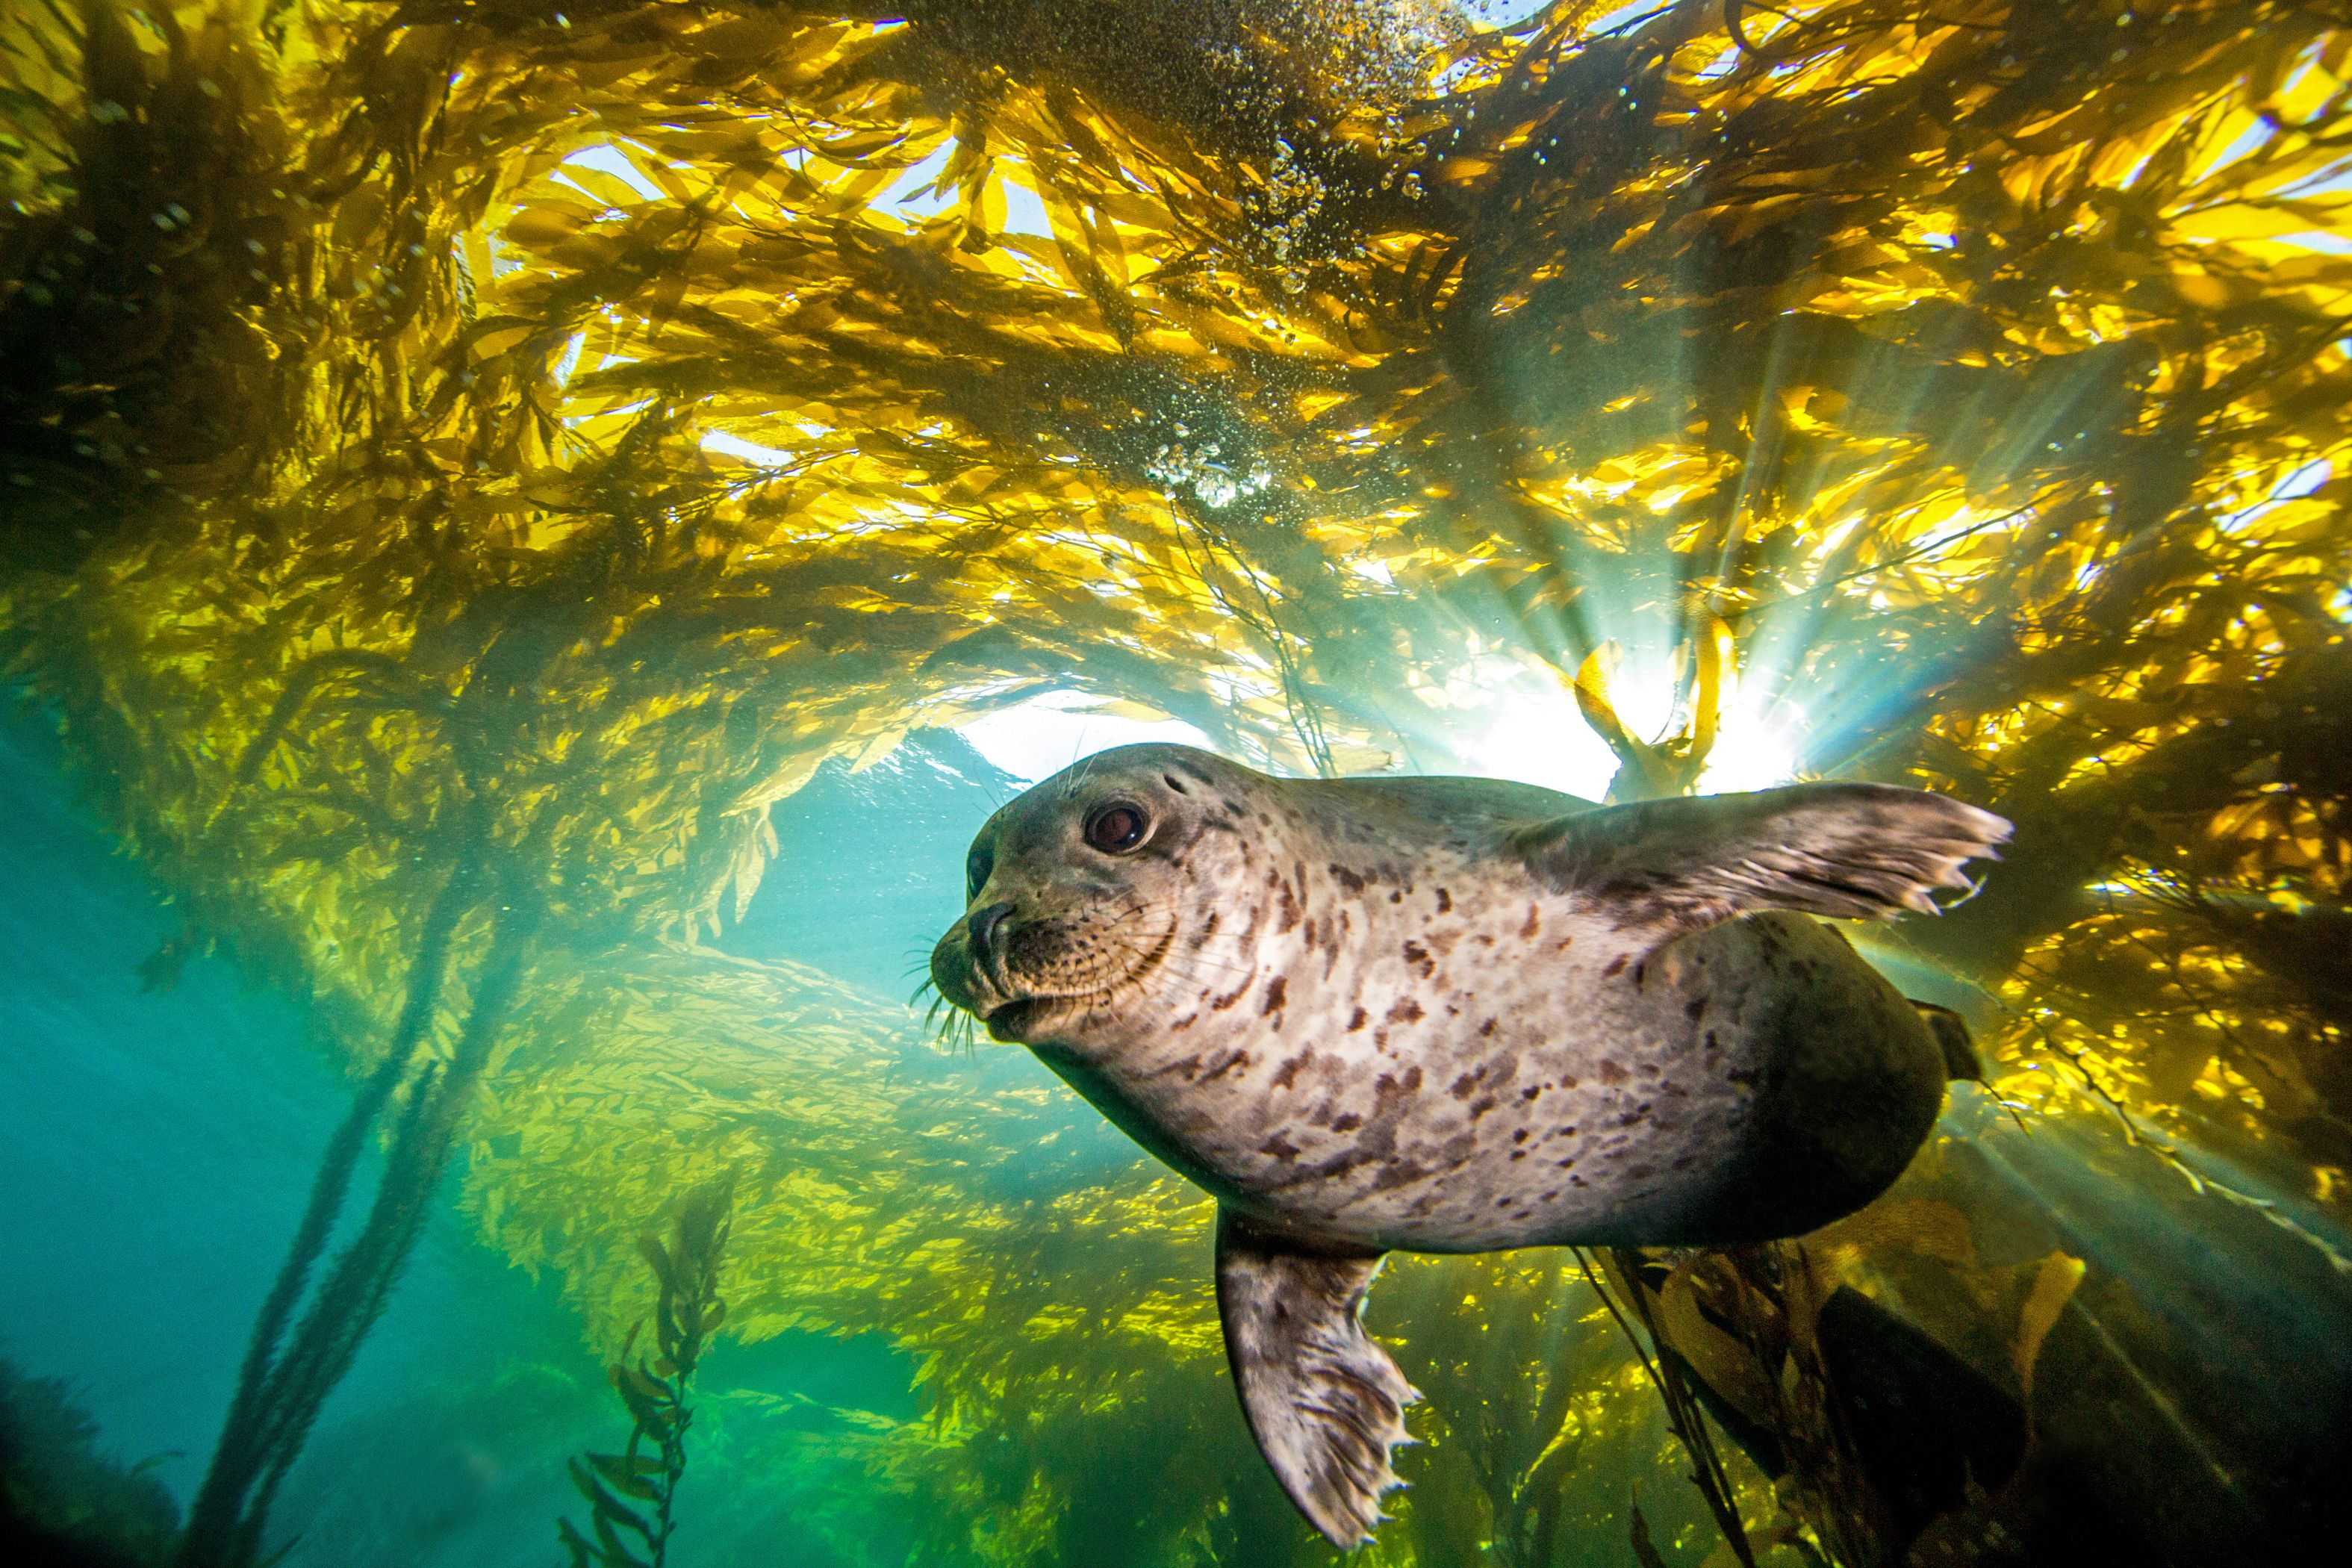 Underwater view of a habor seal swimming through a kelp forest.